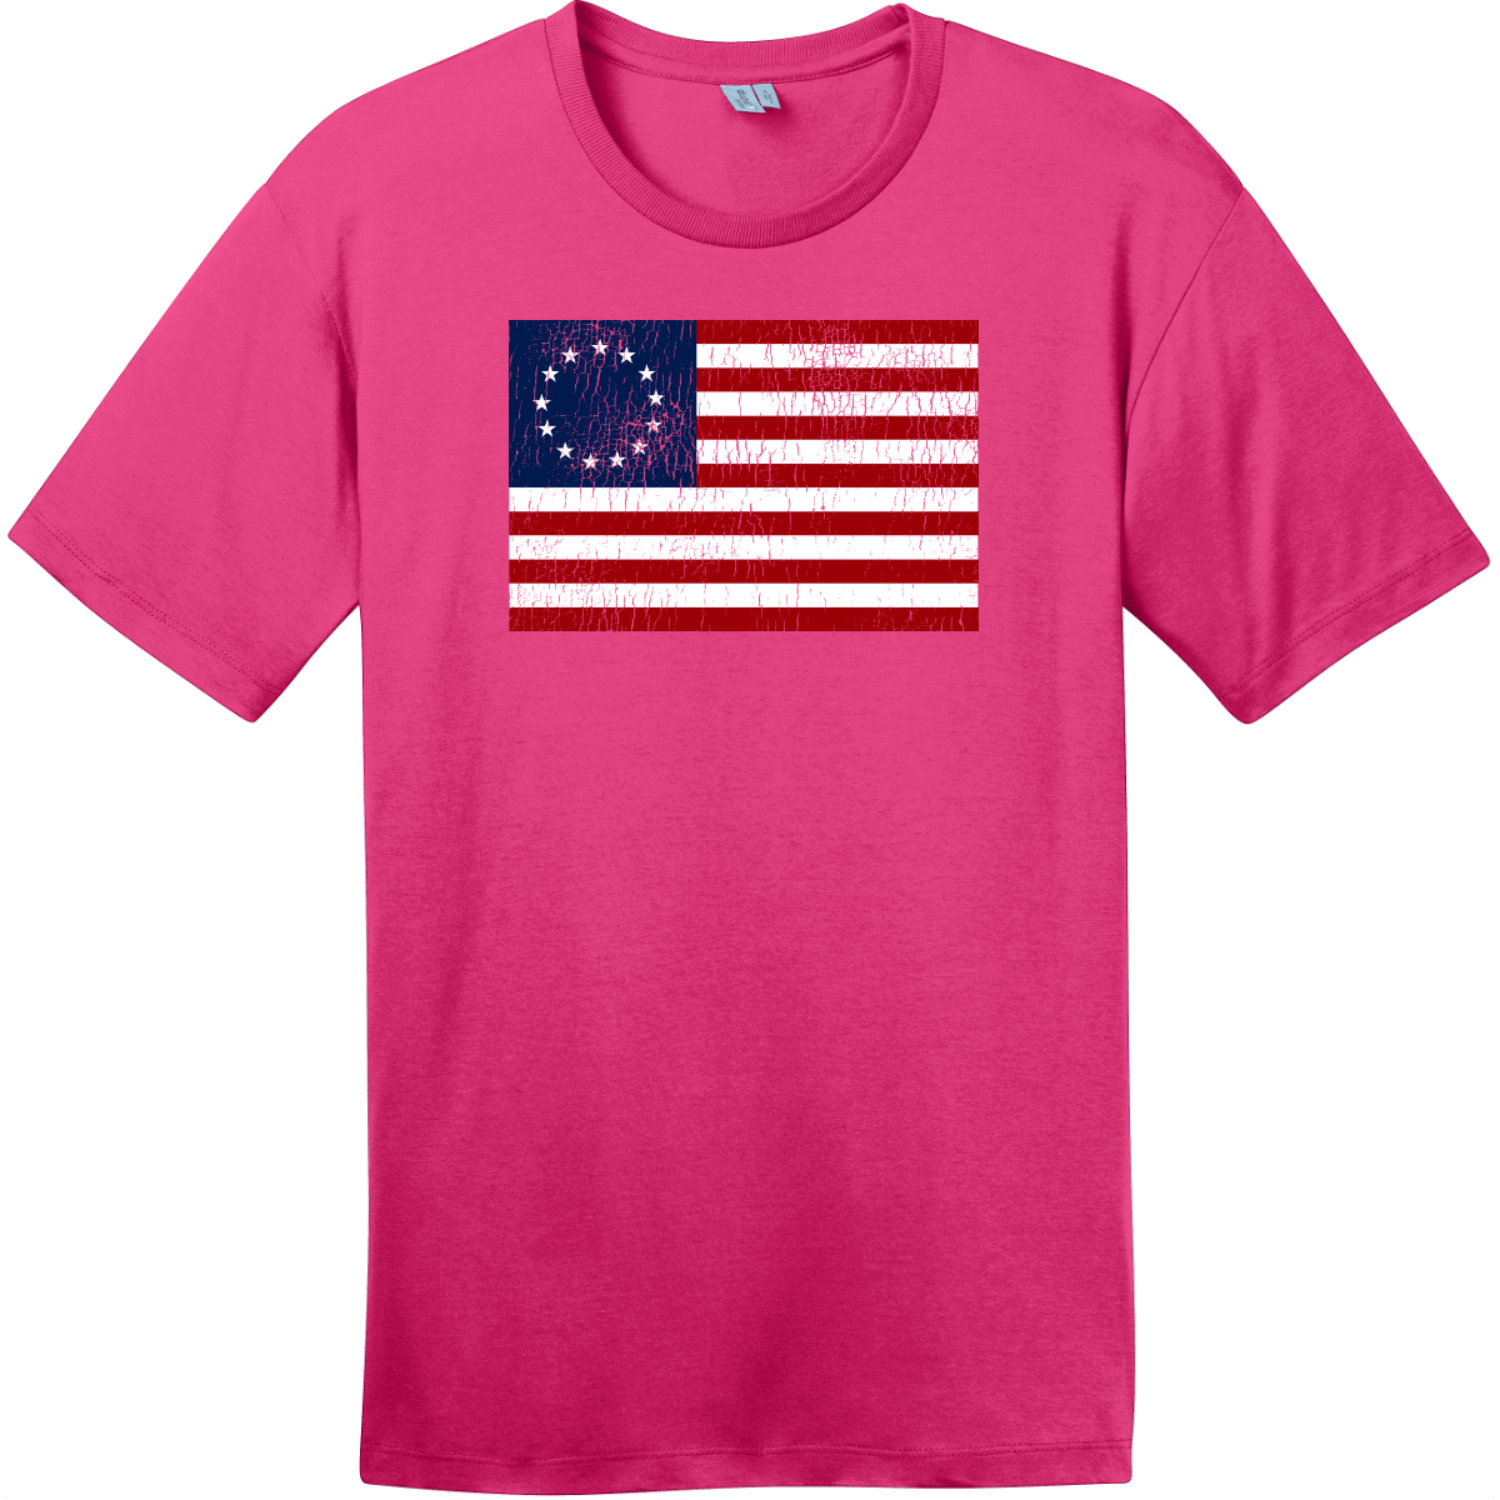 Betsy Ross American Flag Vintage T-Shirt Dark Fuchsia District Perfect Weight Tee DT104